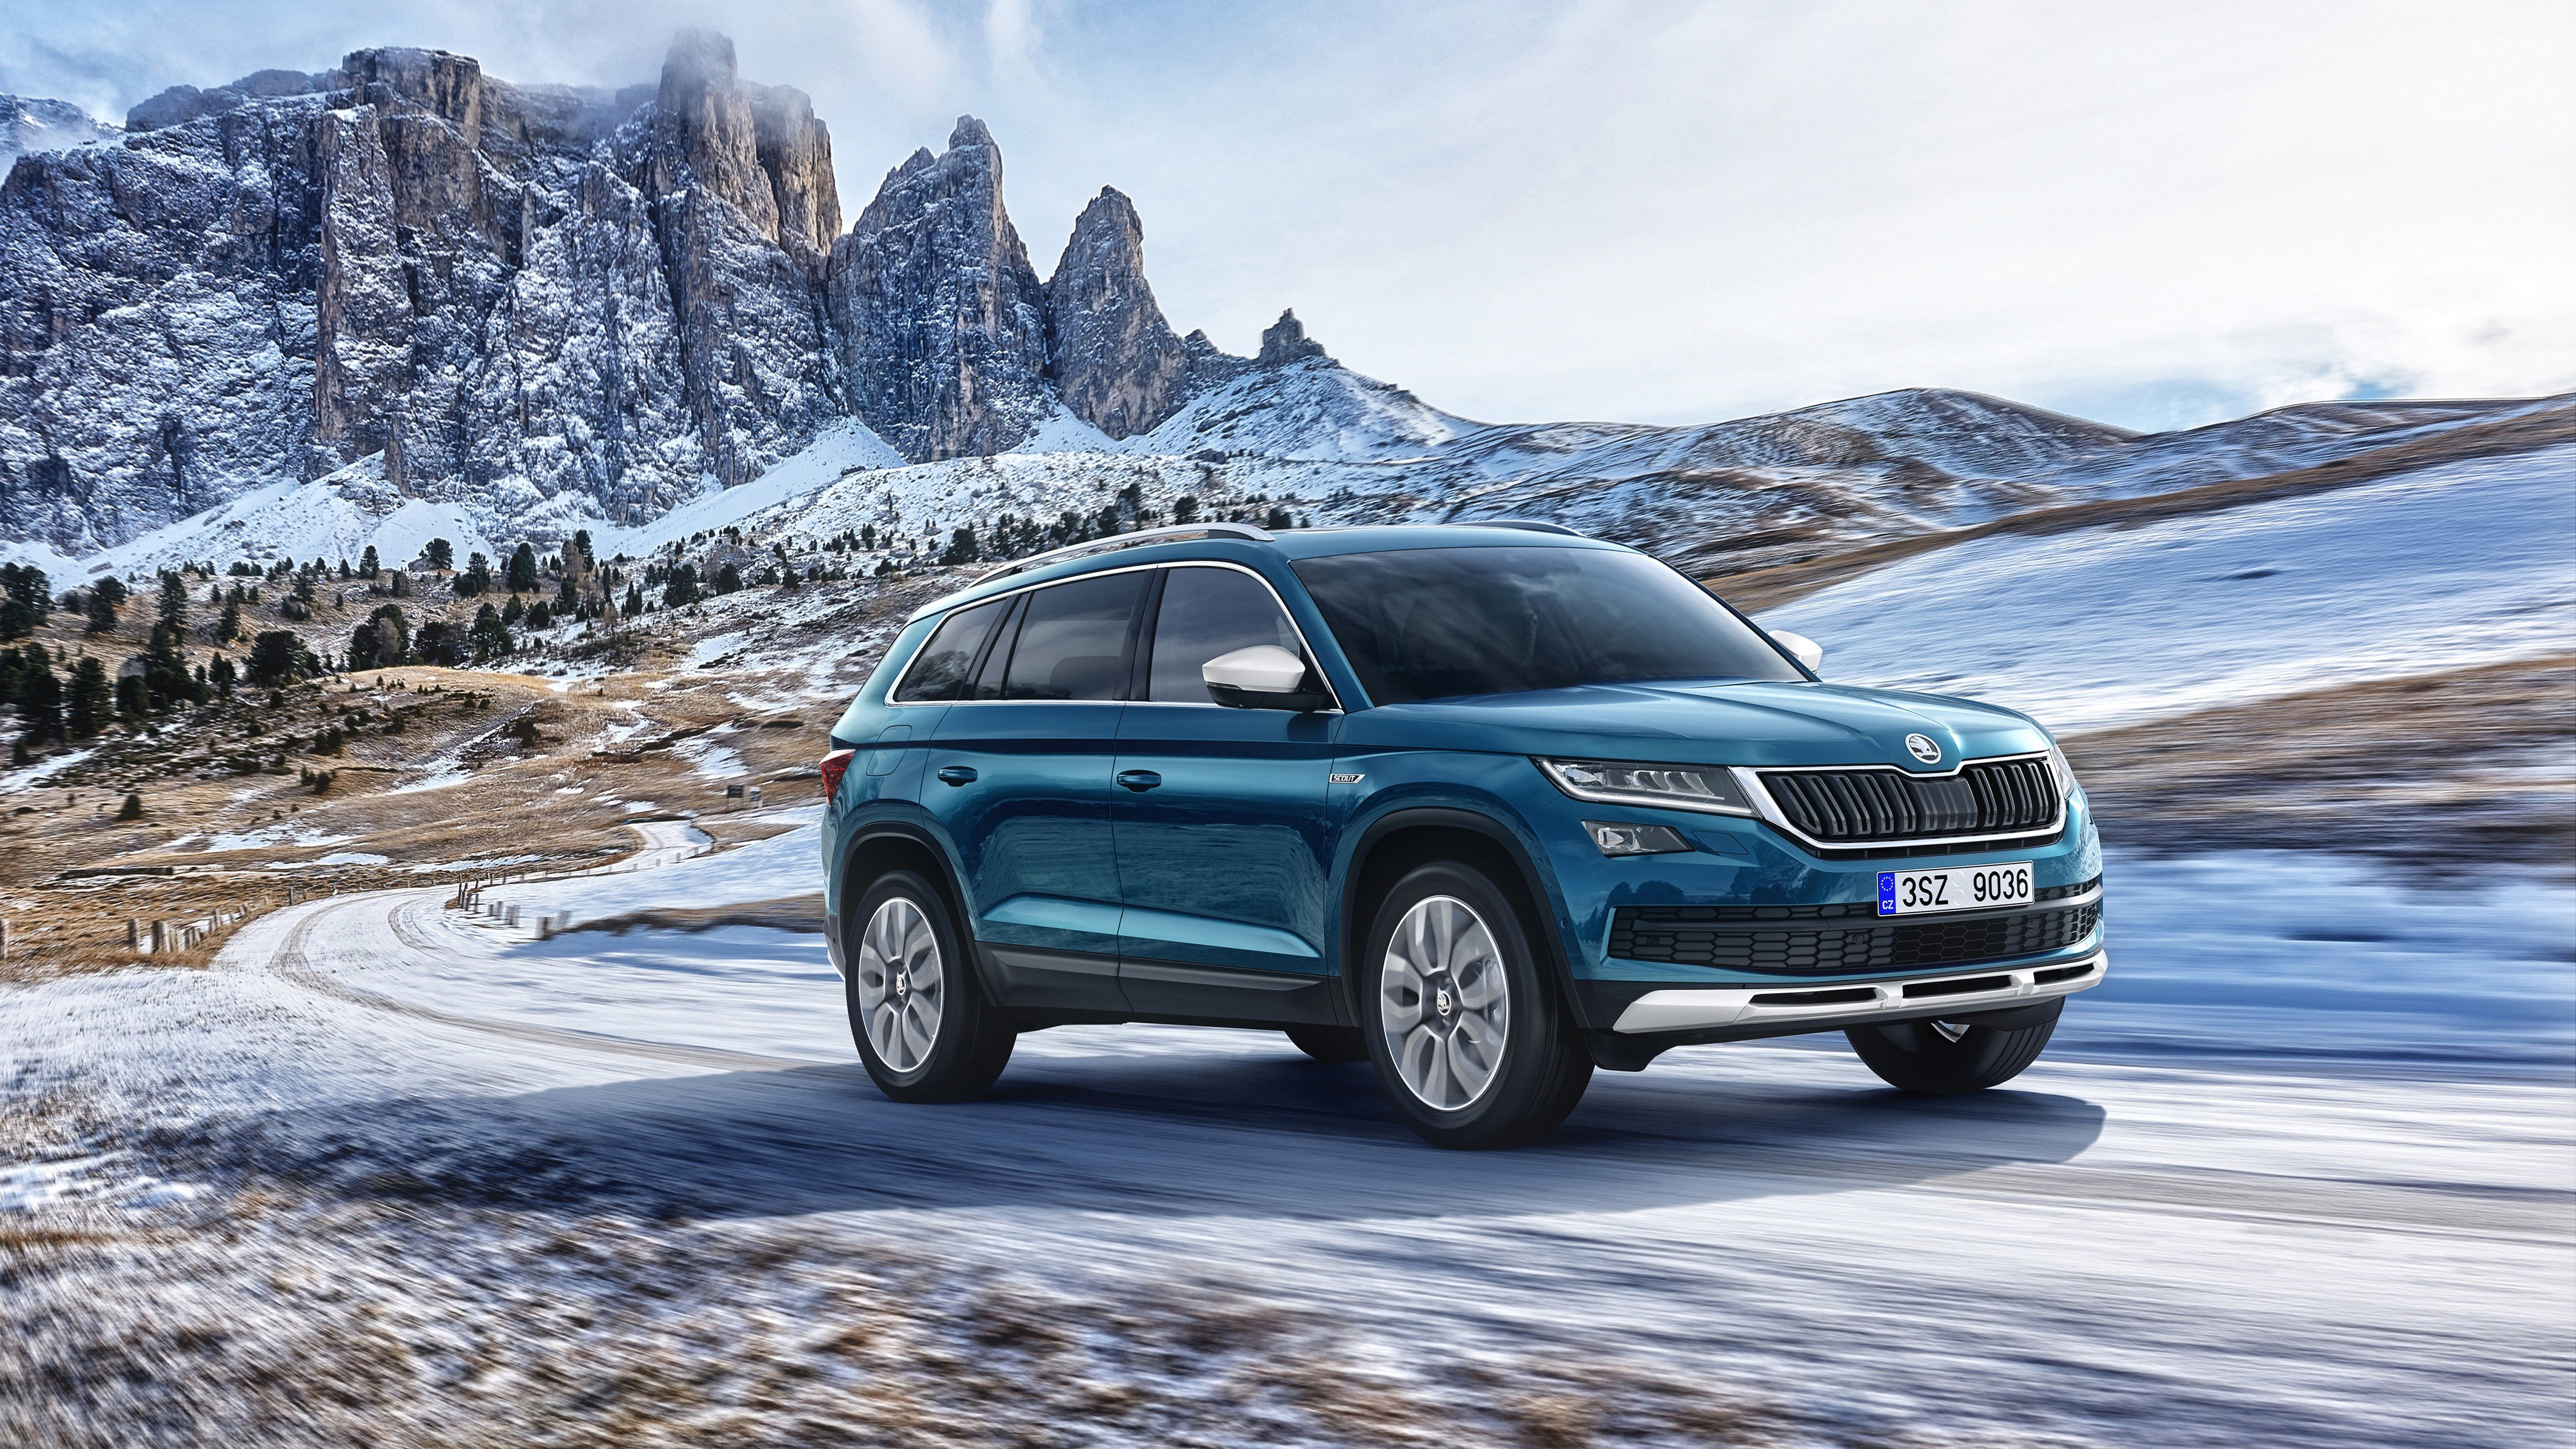 New 2017 Skoda Kodiaq Scout 4K Wallpaper Hd Car Wallpapers On This Month